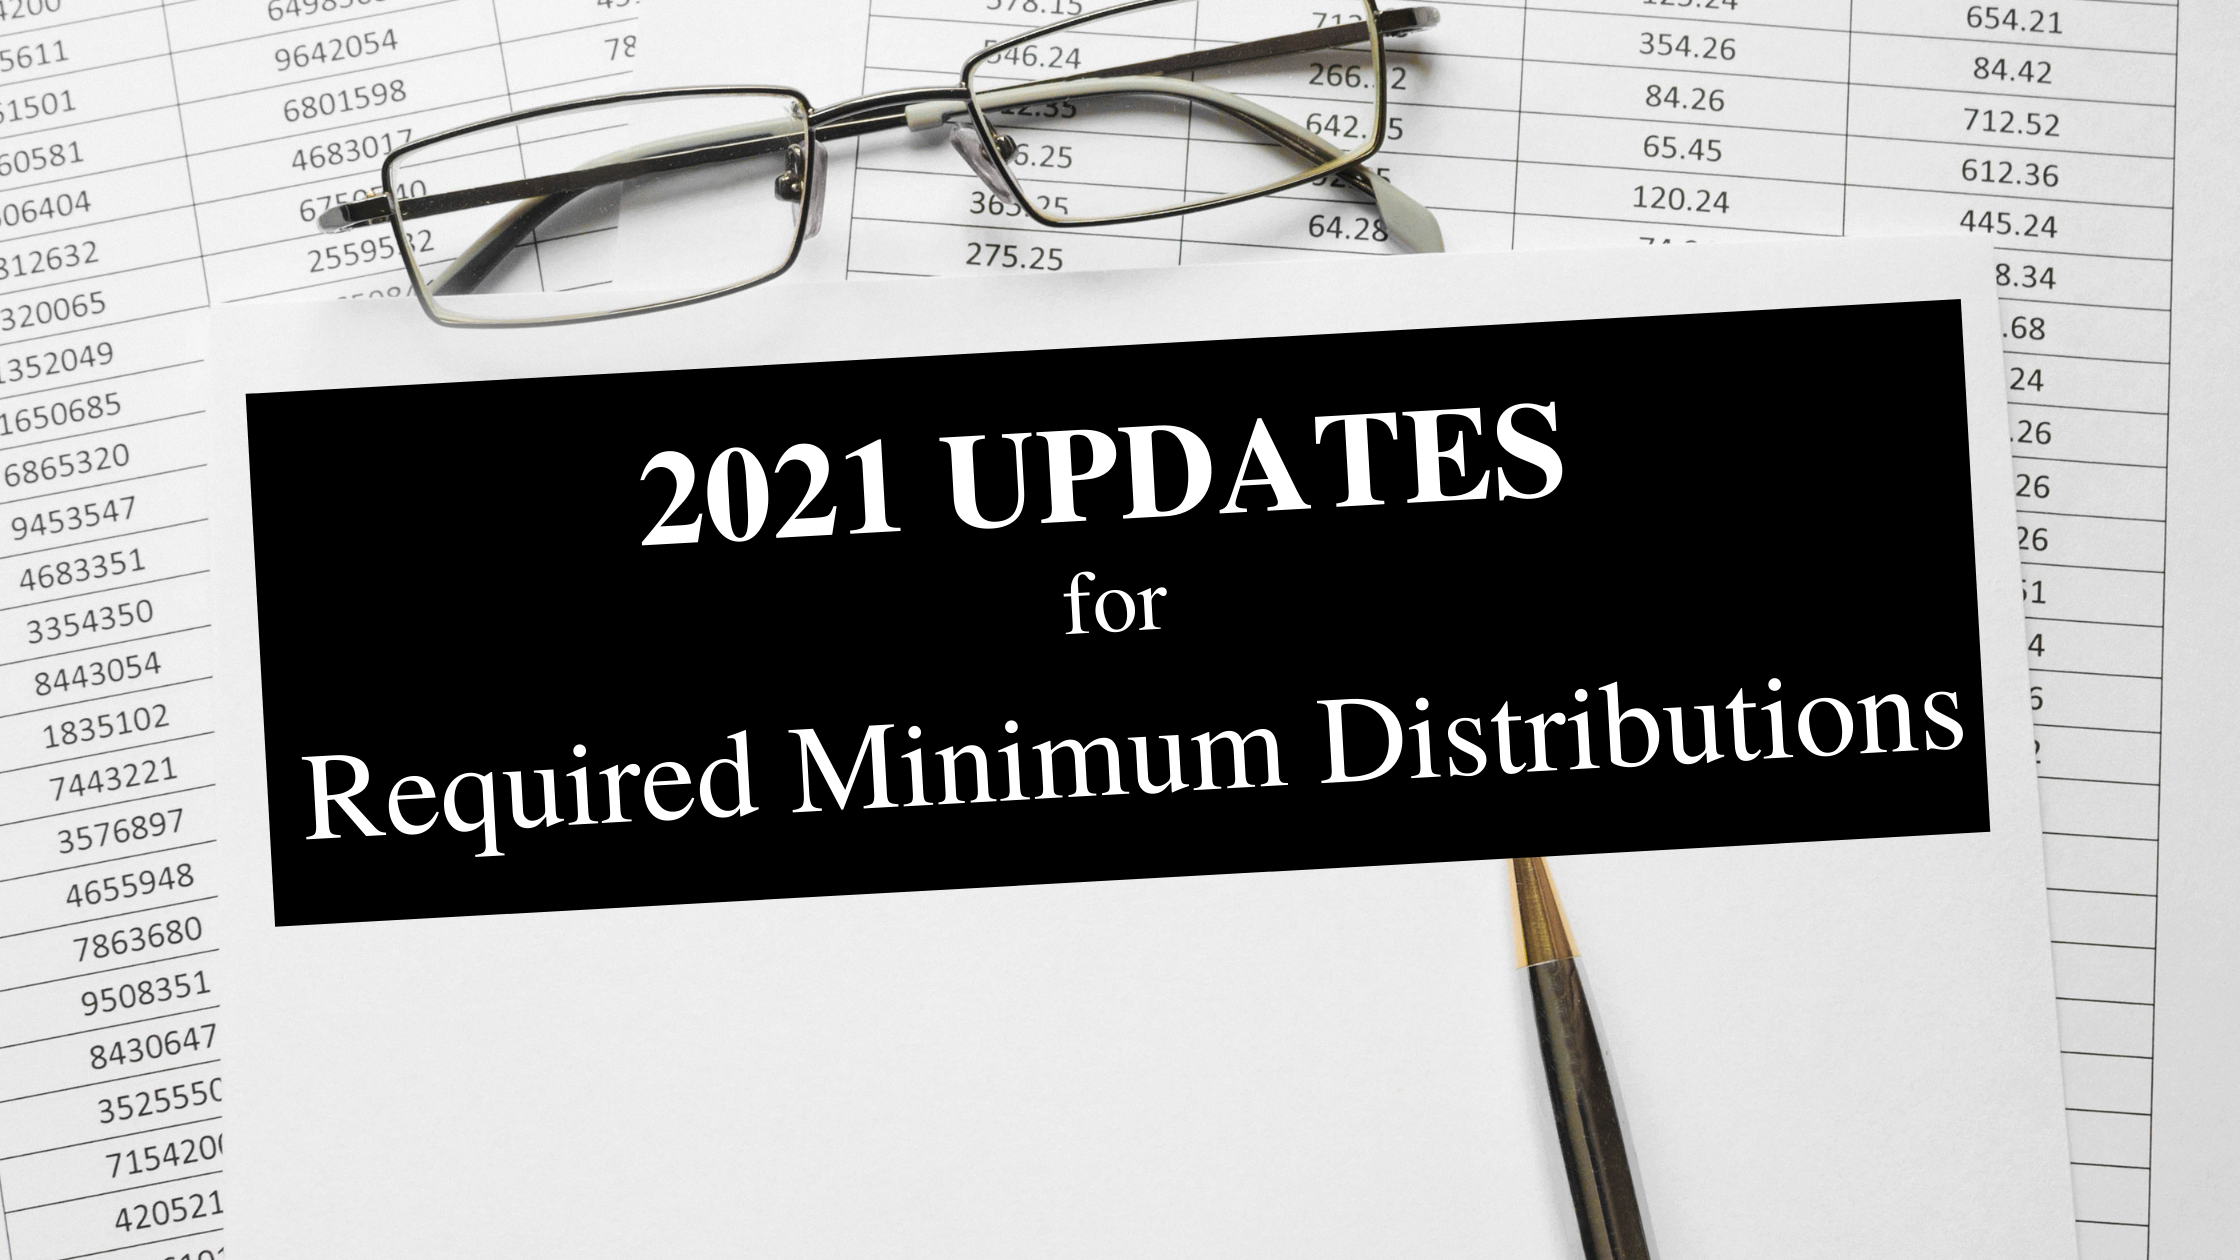 The 2021 Updates for Required Minimum Distributions